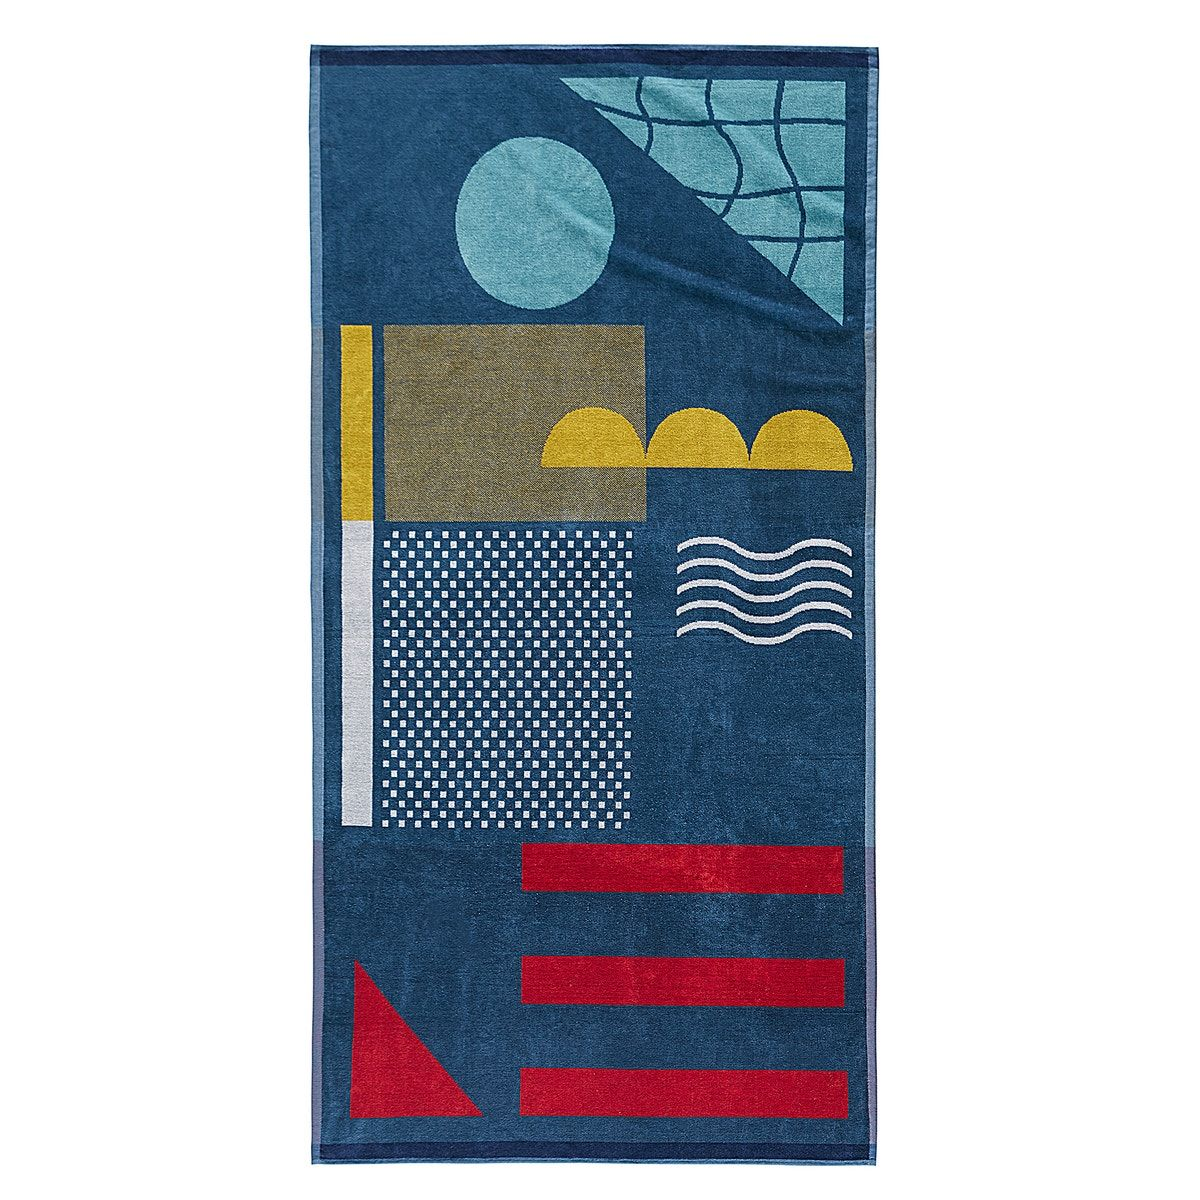 Swimming pool beach towel in 100% cotton velour towelling, 400g/m². One side multi-coloured bouclé towelling, one side printed velour towelling.product details: •  100% cotton towelling, 400 g/m² •  one side multi-coloured bouclé towelling, one side printed velour towelling •  washable at 60°c •  tumble drysize: •  90 x 180cmsee the full range of bath linen online.additional information: •  the oeko-tex® label guarantees that the items tested and certified do not contain any harmful substances t